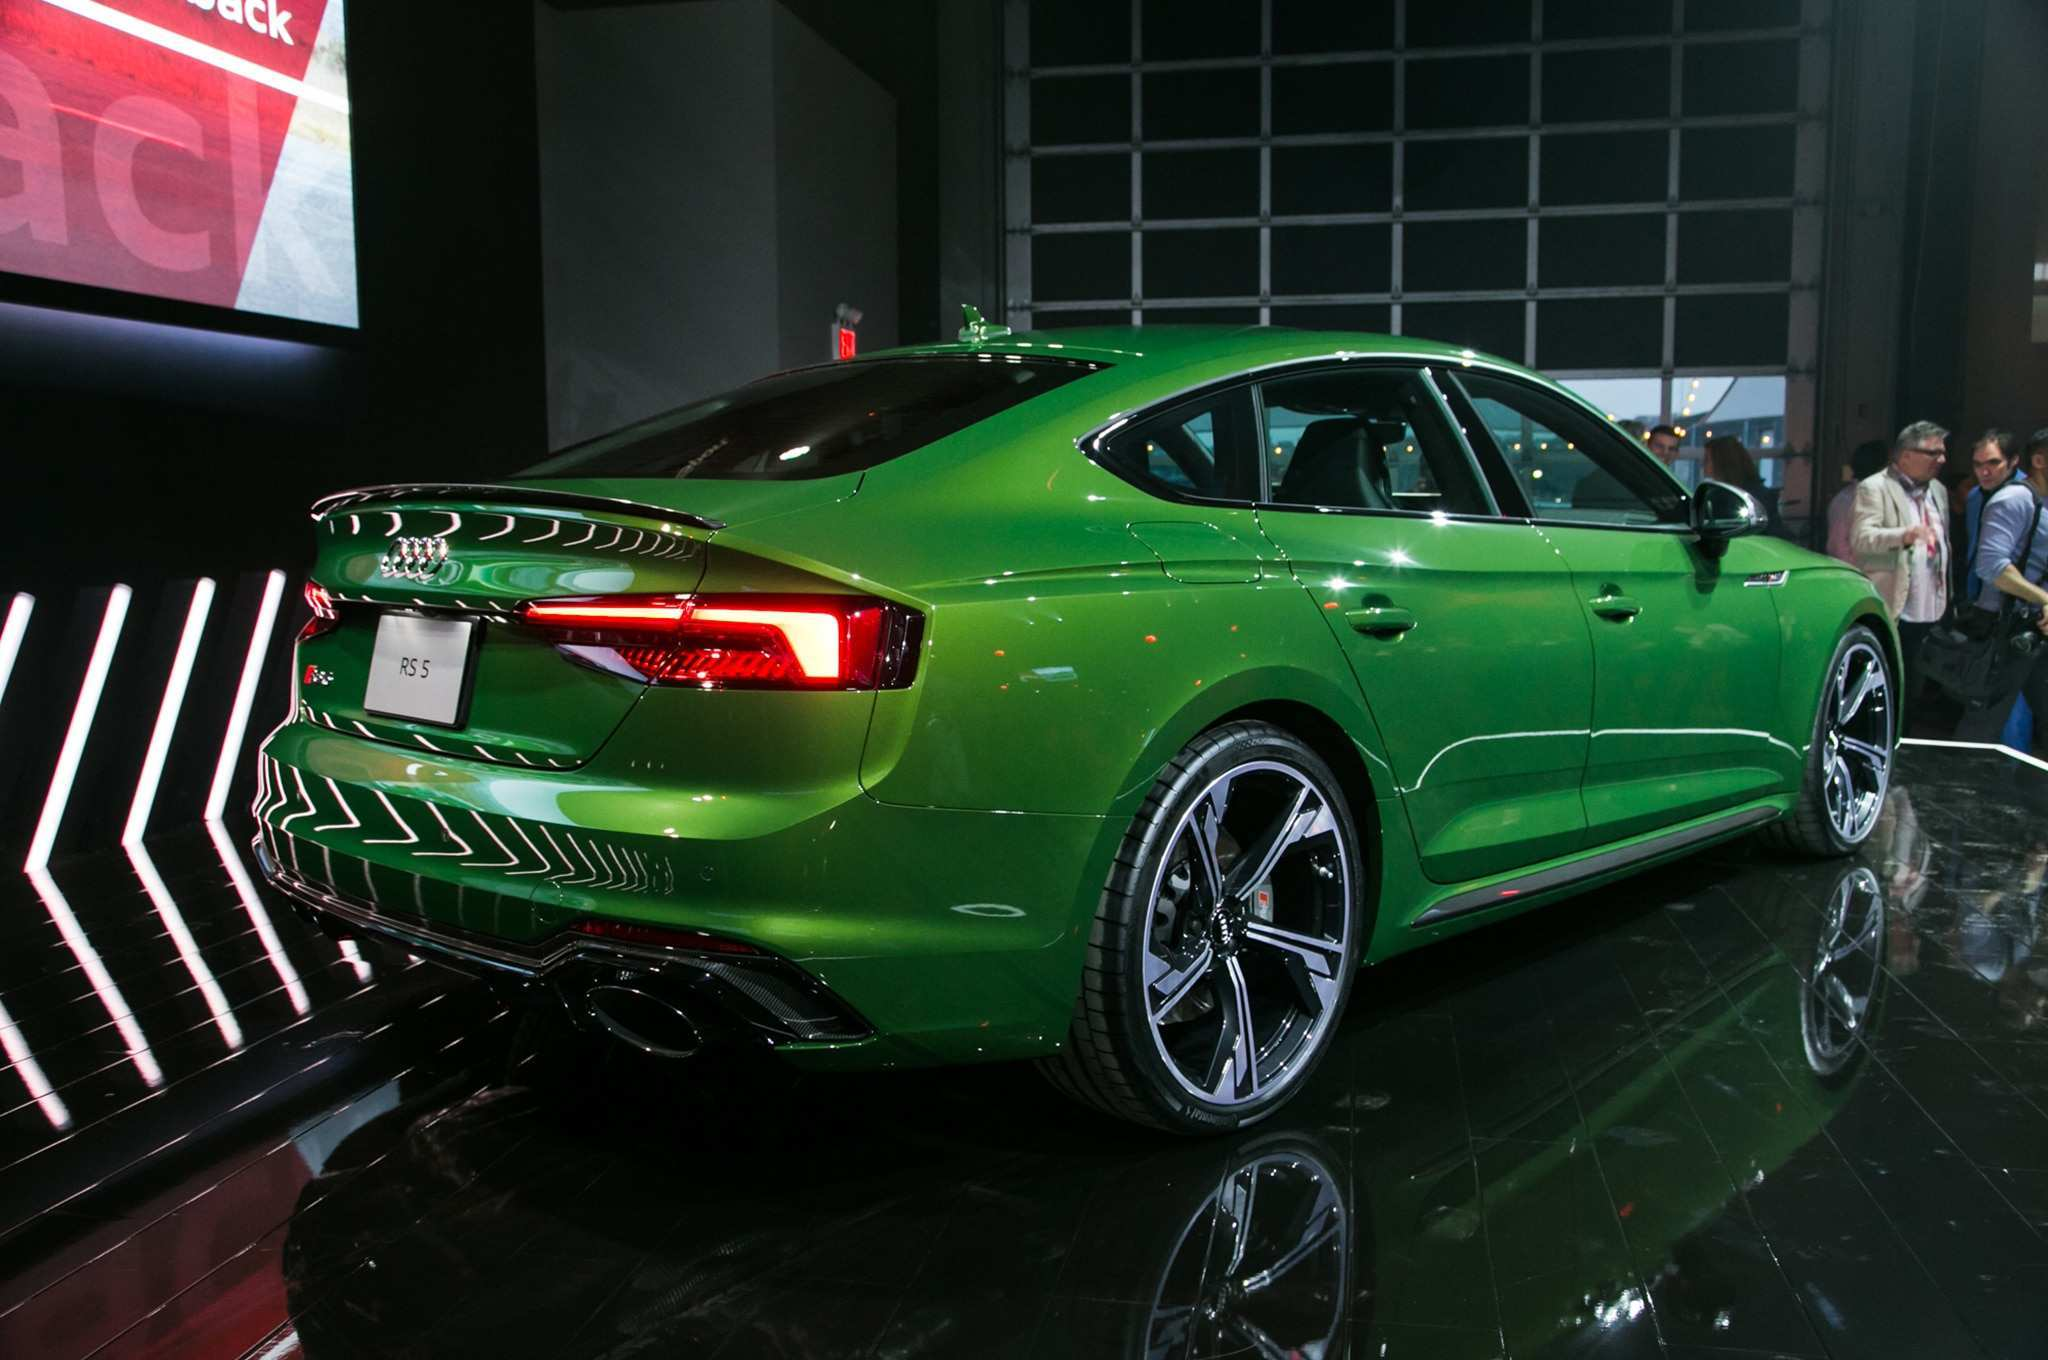 39 All New 2019 Audi Green Overview for 2019 Audi Green